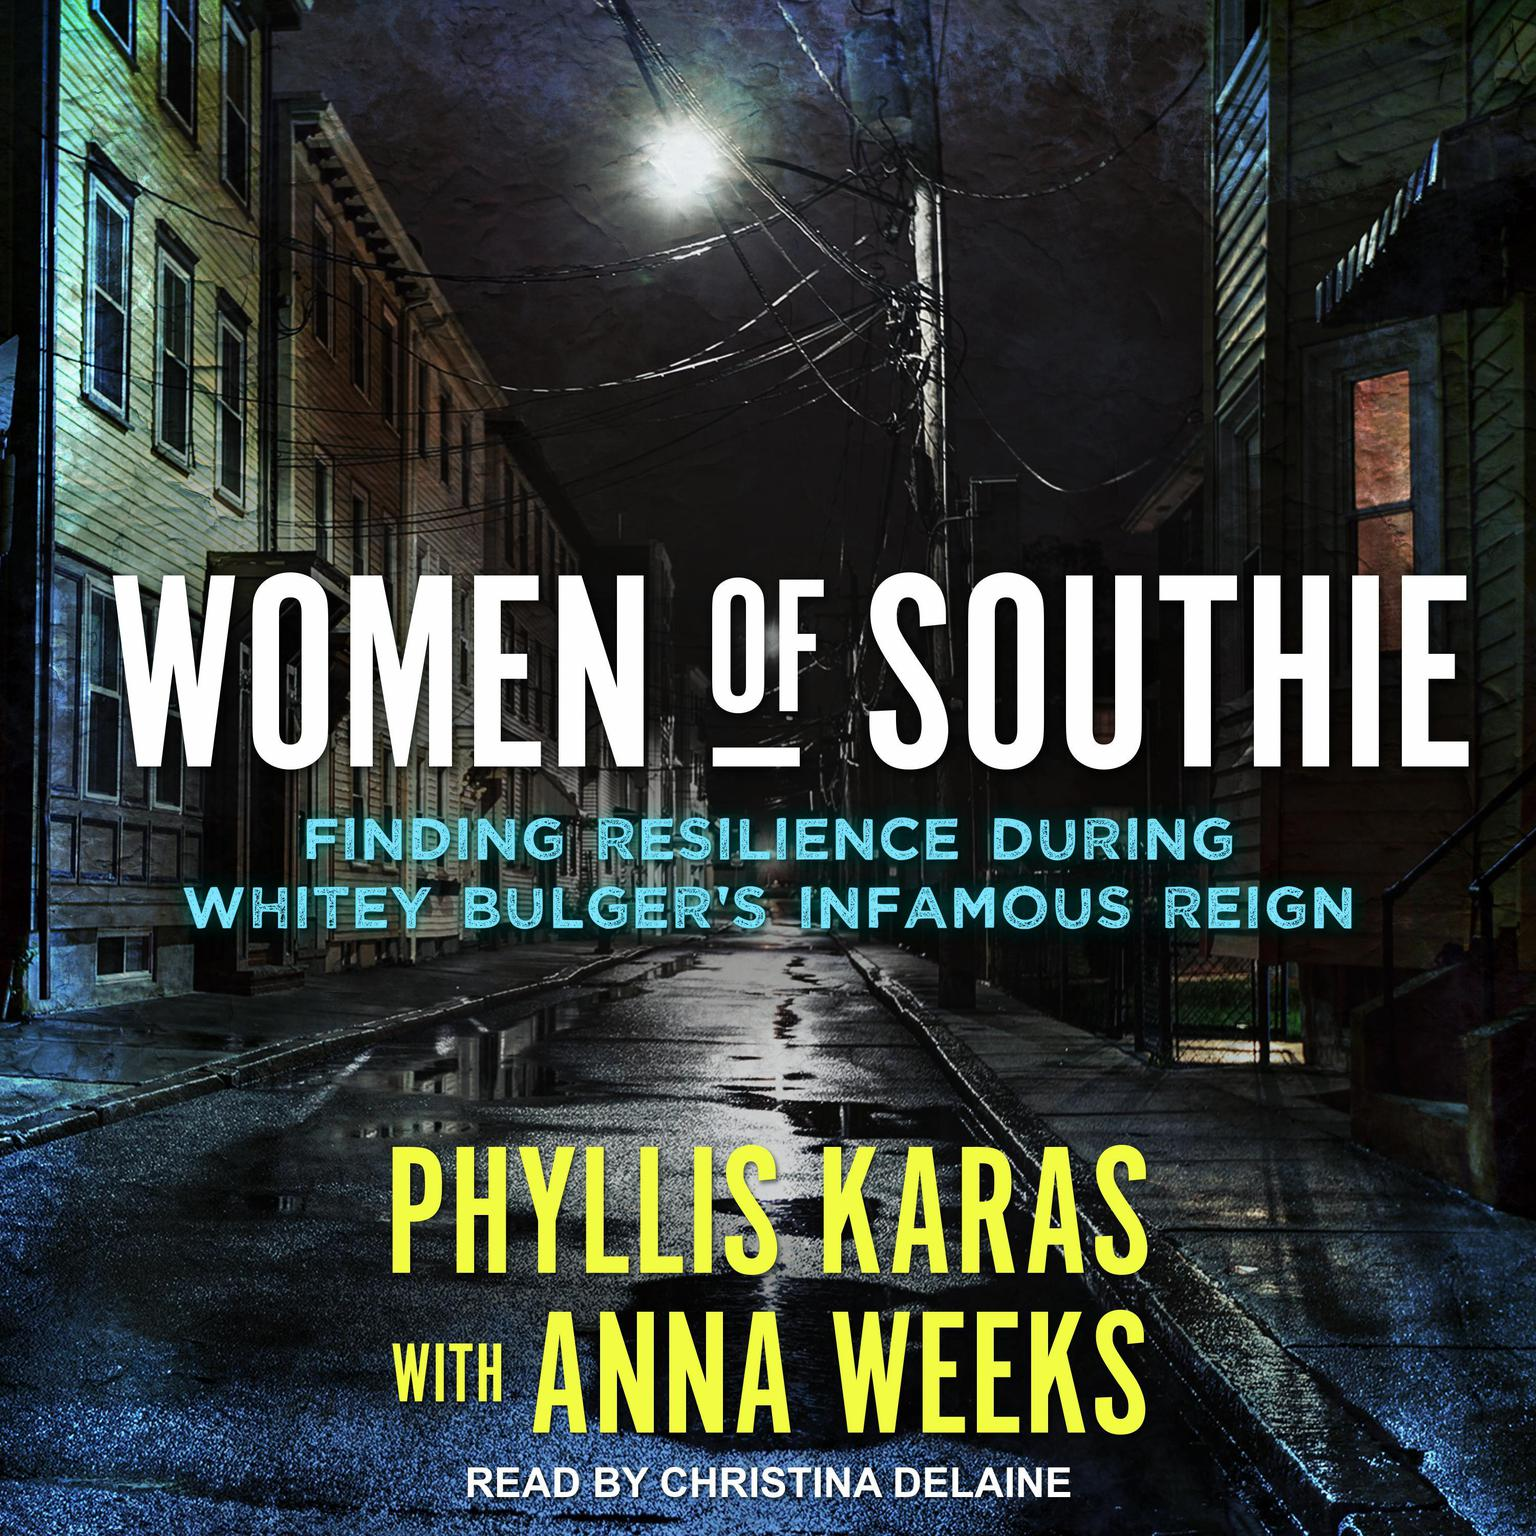 Printable Women of Southie: Finding Resilience During Whitey Bulger's Infamous Reign Audiobook Cover Art